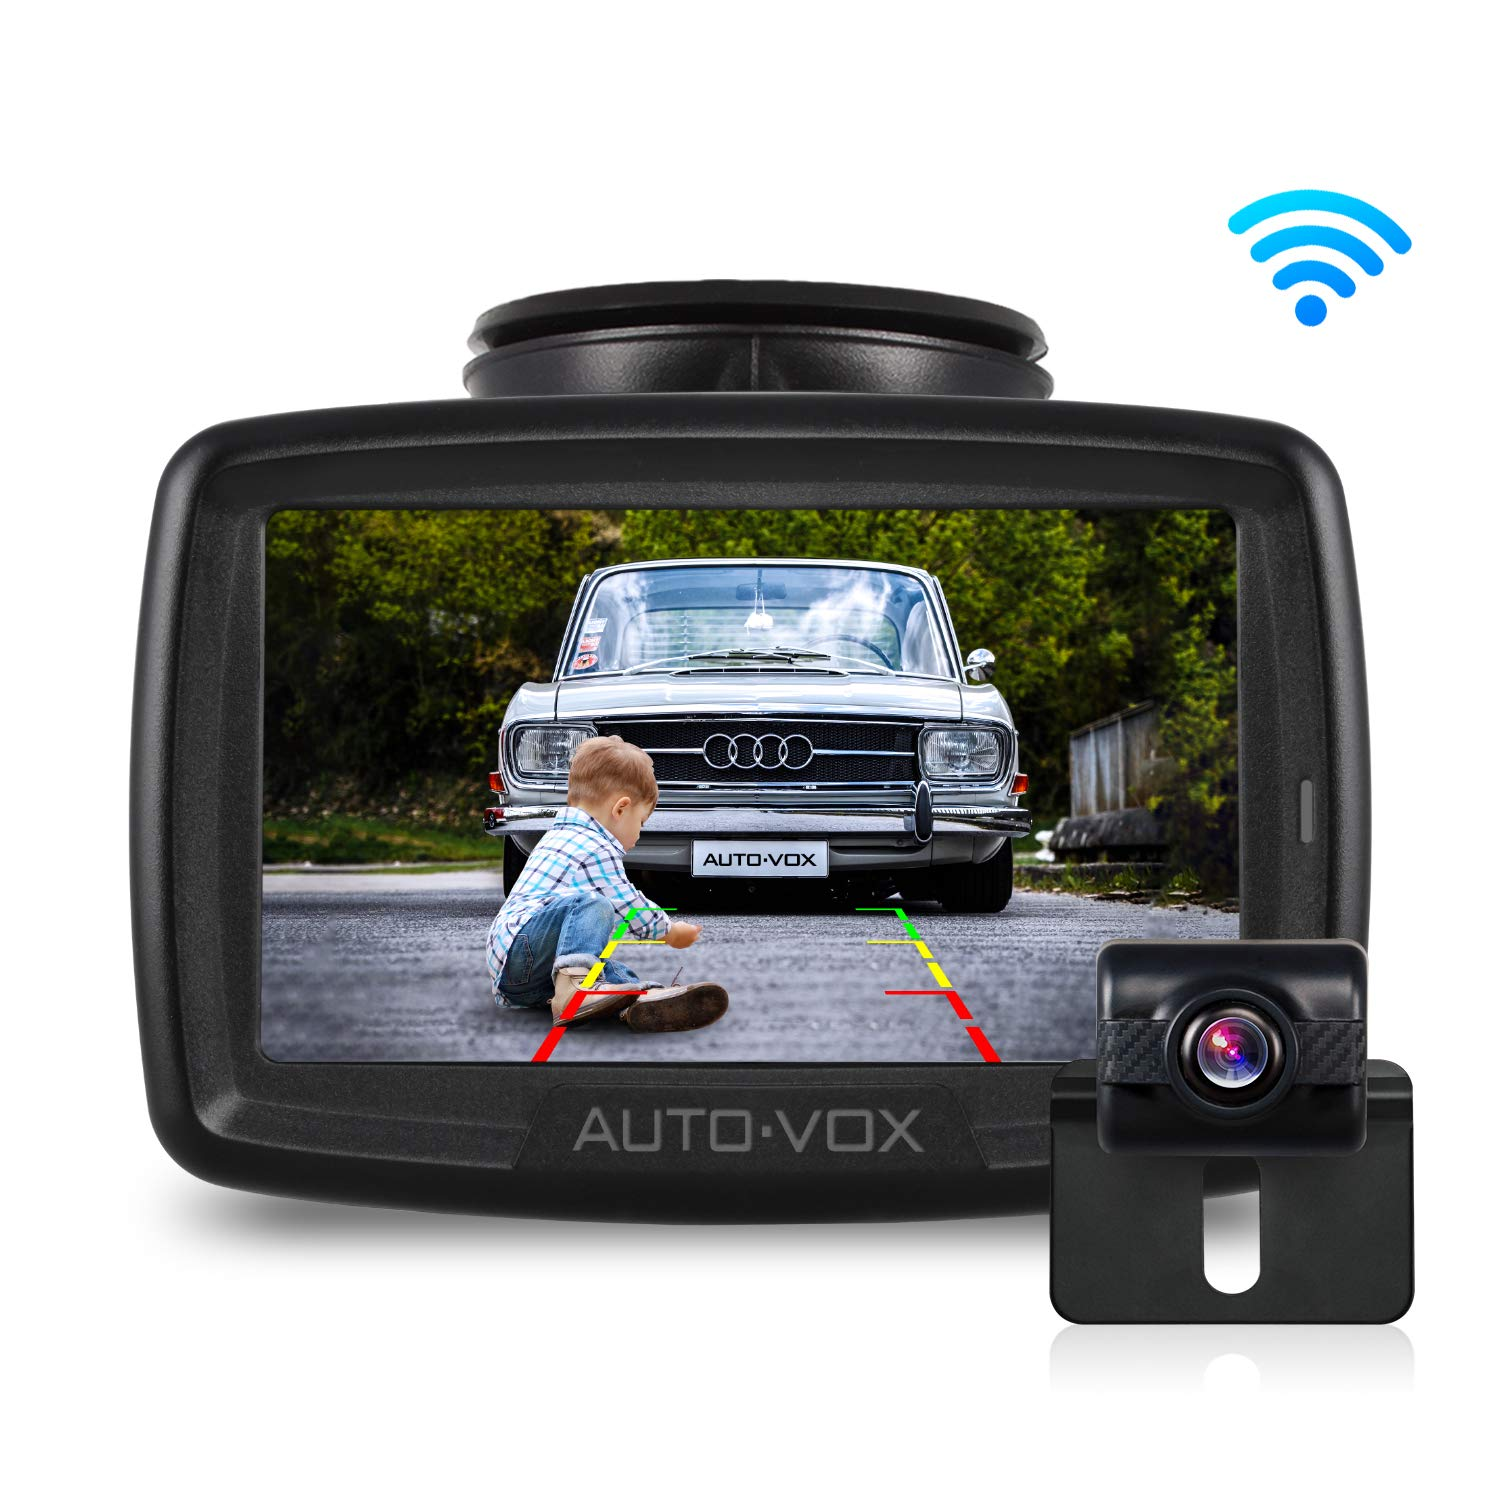 W2 NO Interference Digital Wireless Backup Camera System Kit with Built-in Transmitter, IP68 Waterproof Wireless Rear View Camera and 4.3'LCD Wireless Reversing Monitor for Trailer,Minibus, Trucks by AUTO-VOX